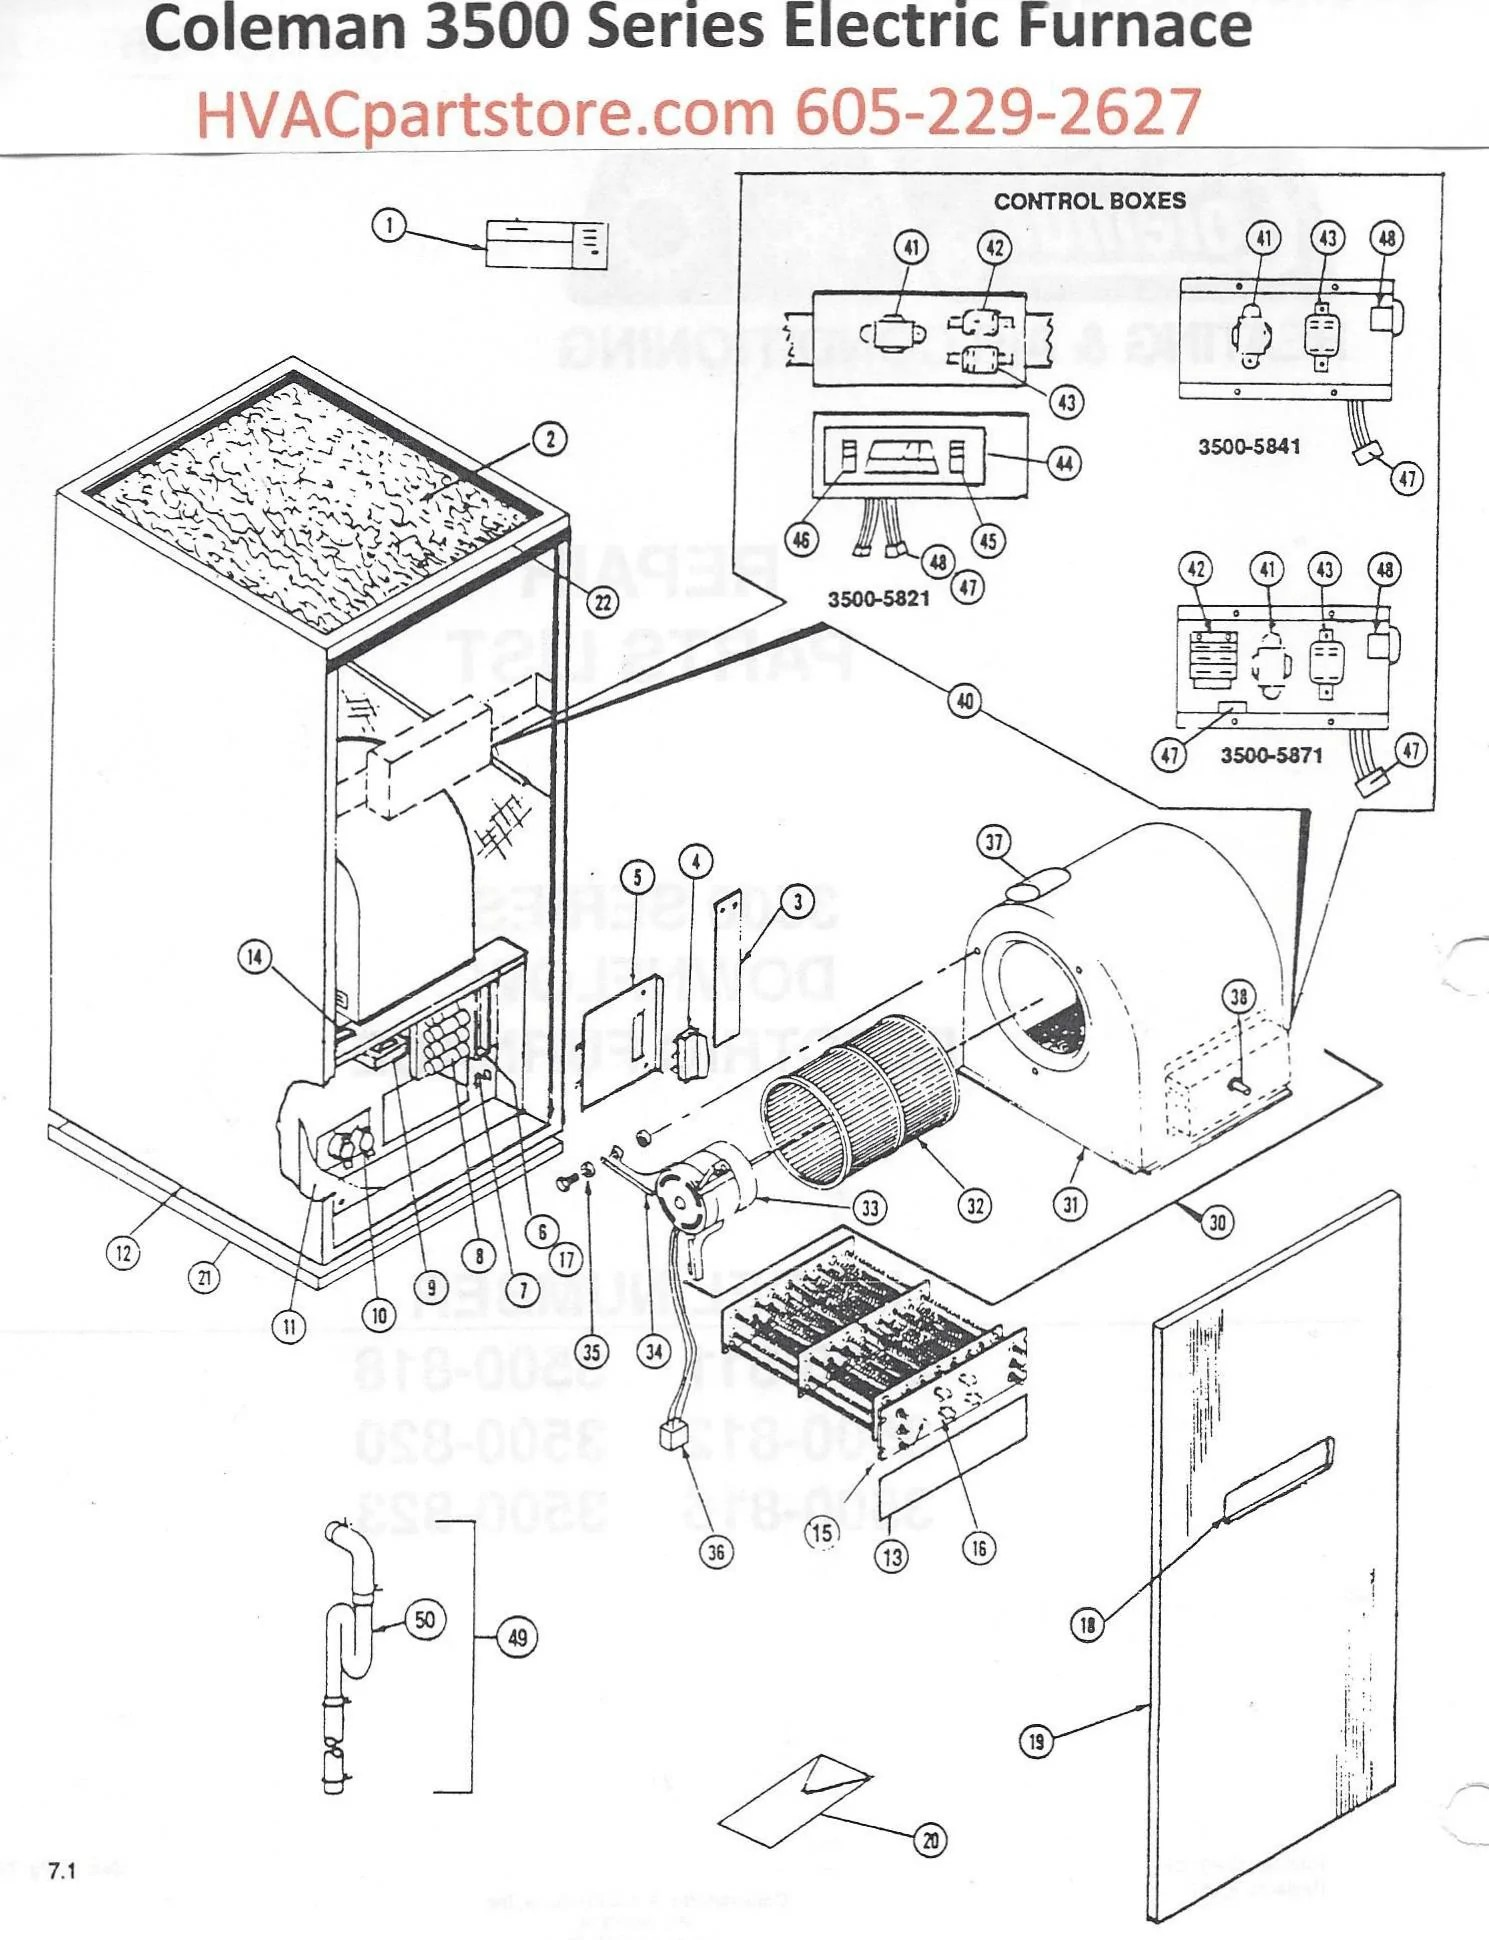 hight resolution of 3500 811 coleman electric furnace parts hvacpartstore armstrong air handler wiring diagram electric heat pump wiring